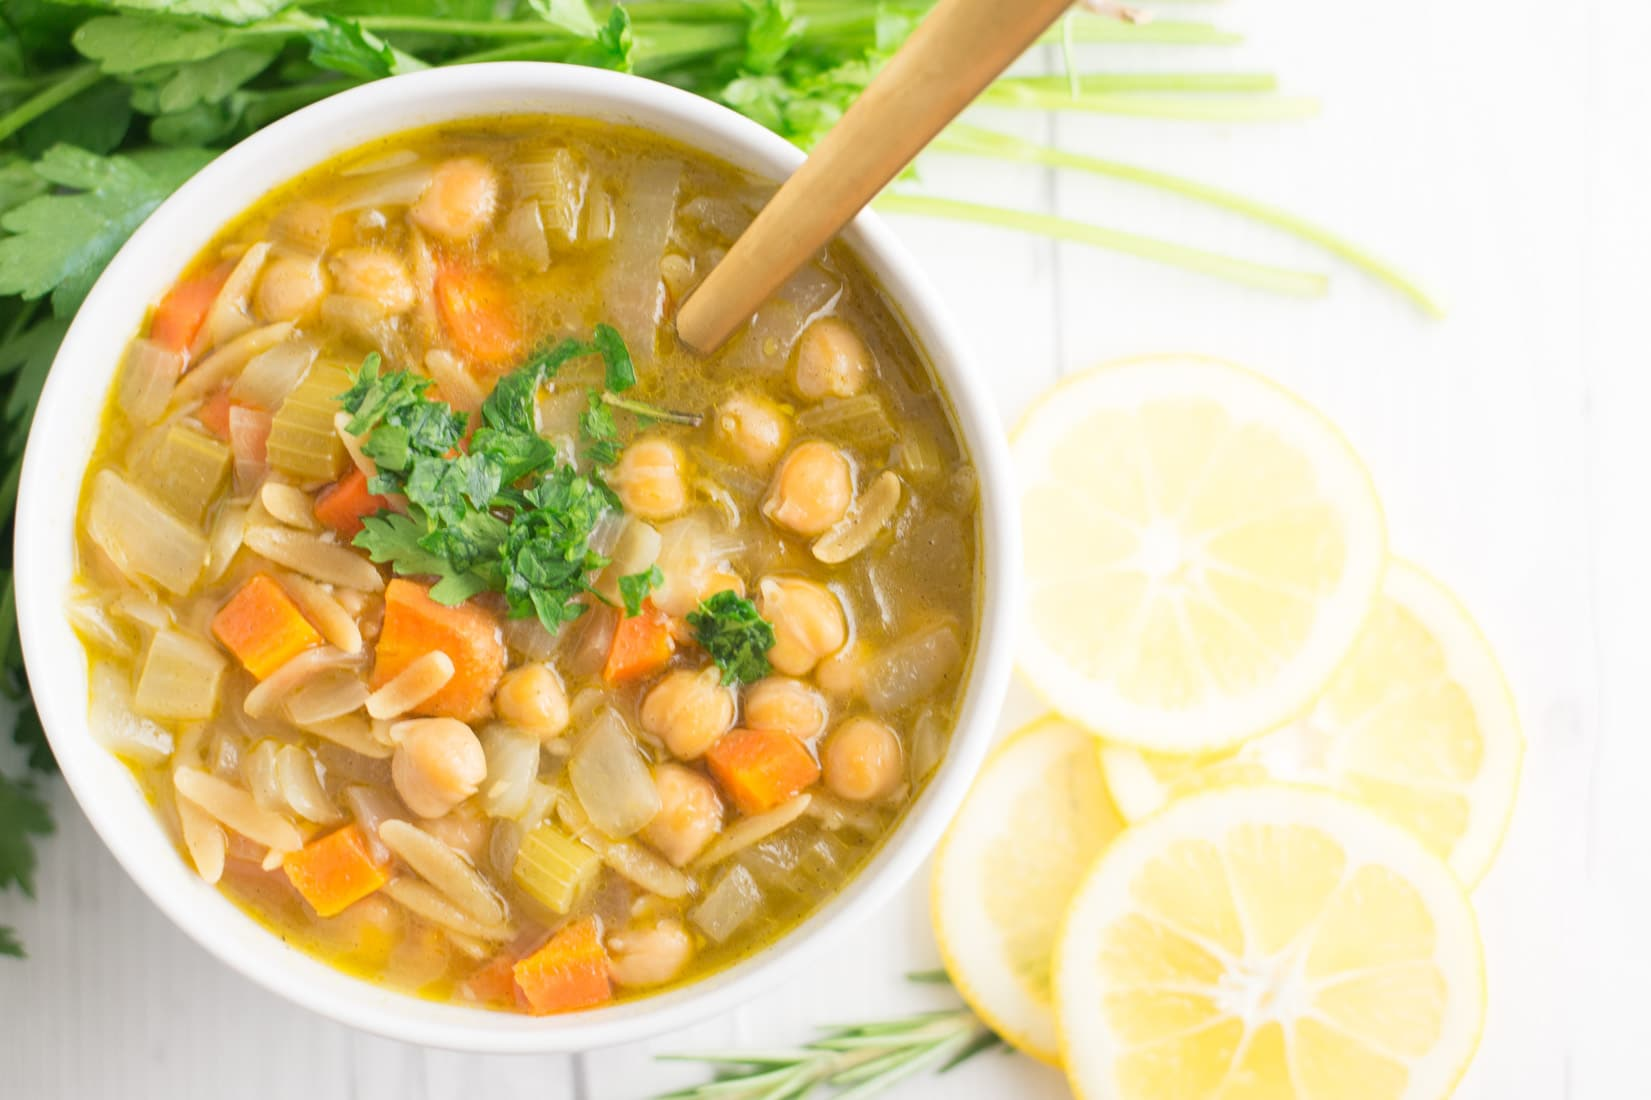 bowl of orzo lemon soup with chickpeas with gold spoon on white background with lemon slices and parsley